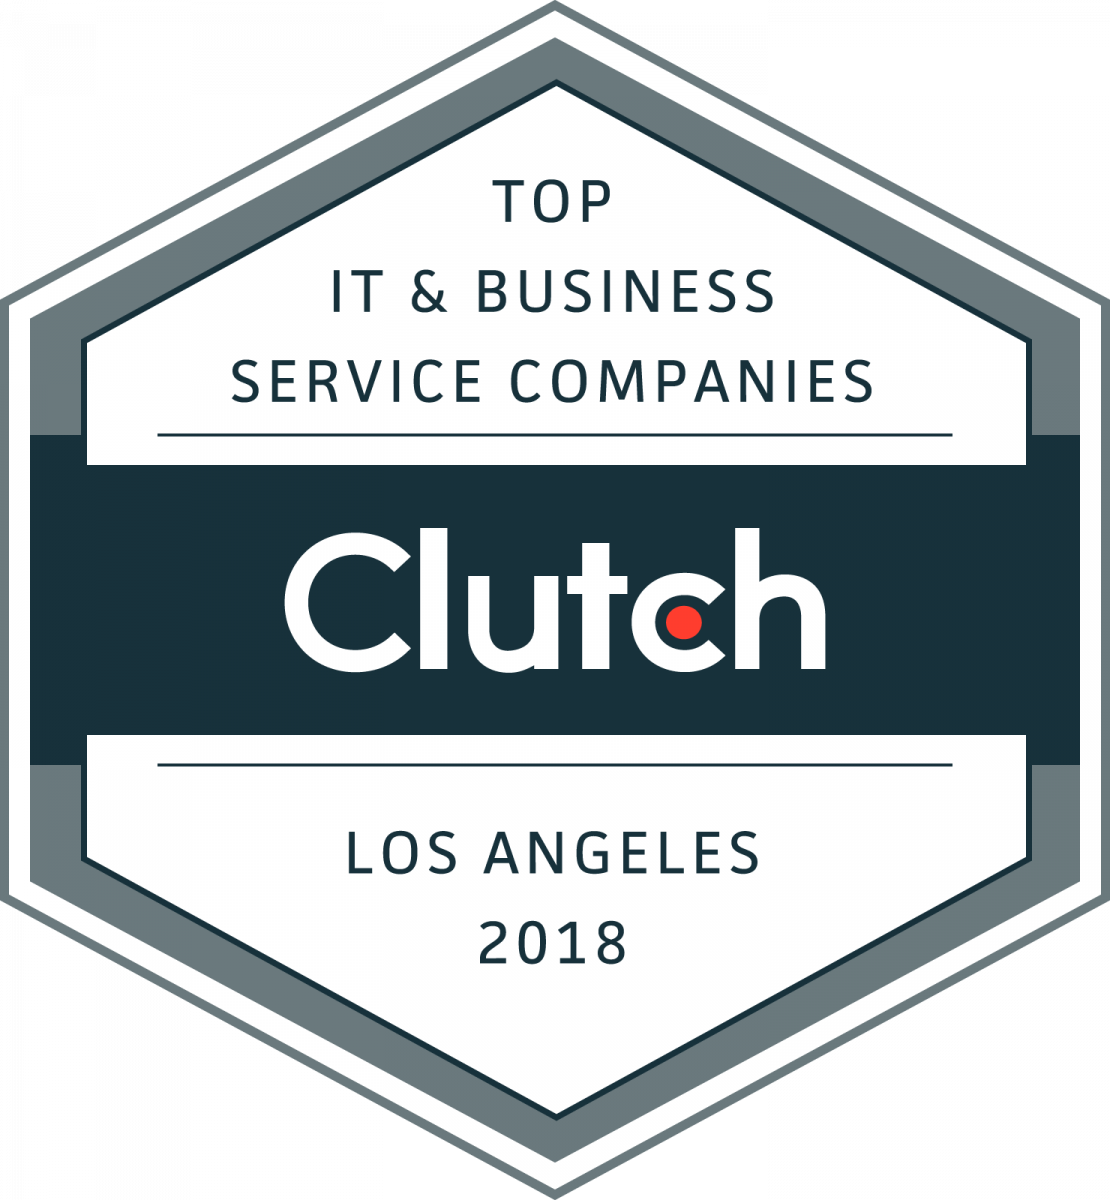 Top IT & Business Service Companies Badge Los Angeles 2018